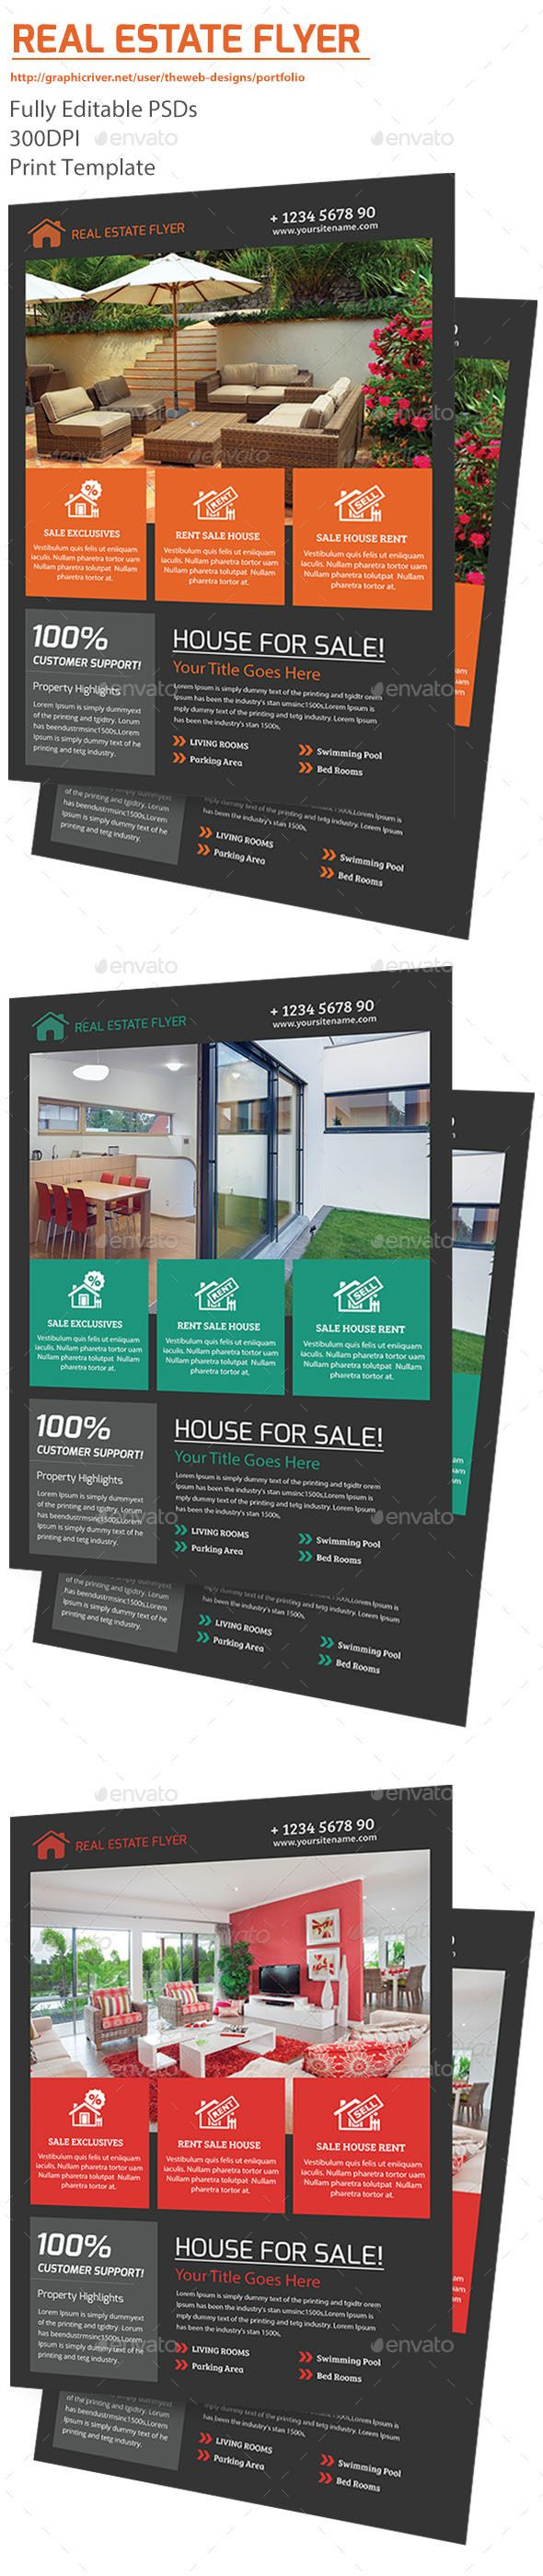 best ideas about real estate flyers real estate real estate flyer